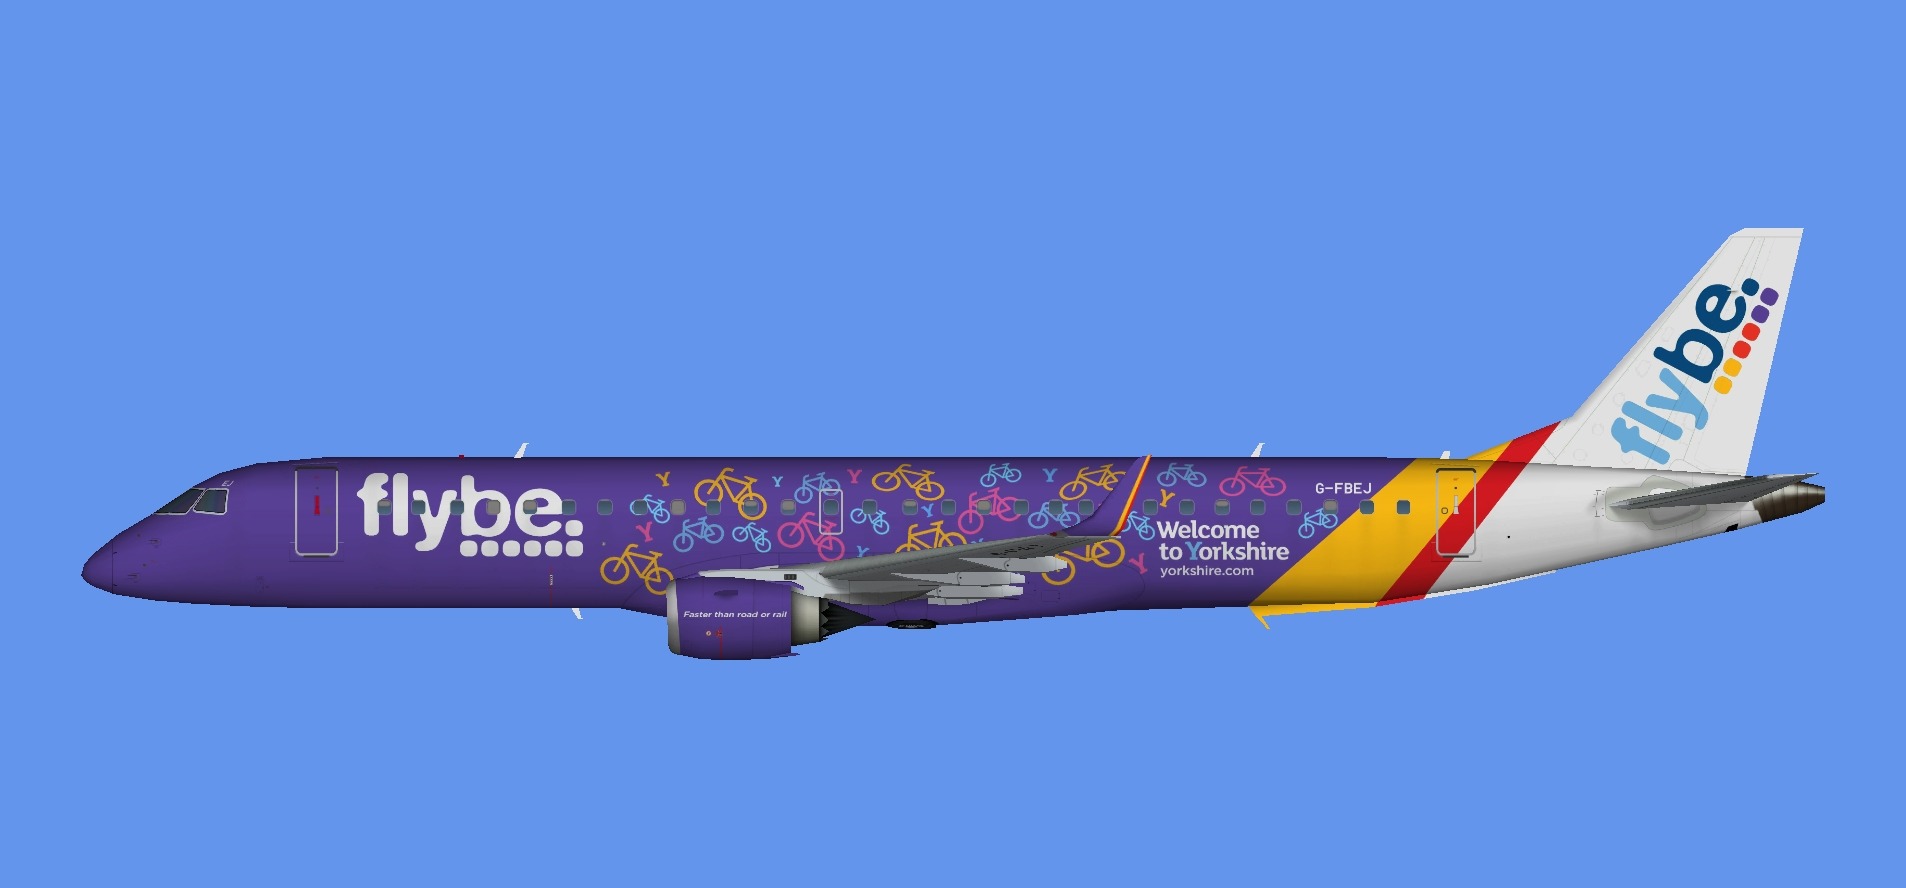 Flybe Embraer E195 'Yorkshire'